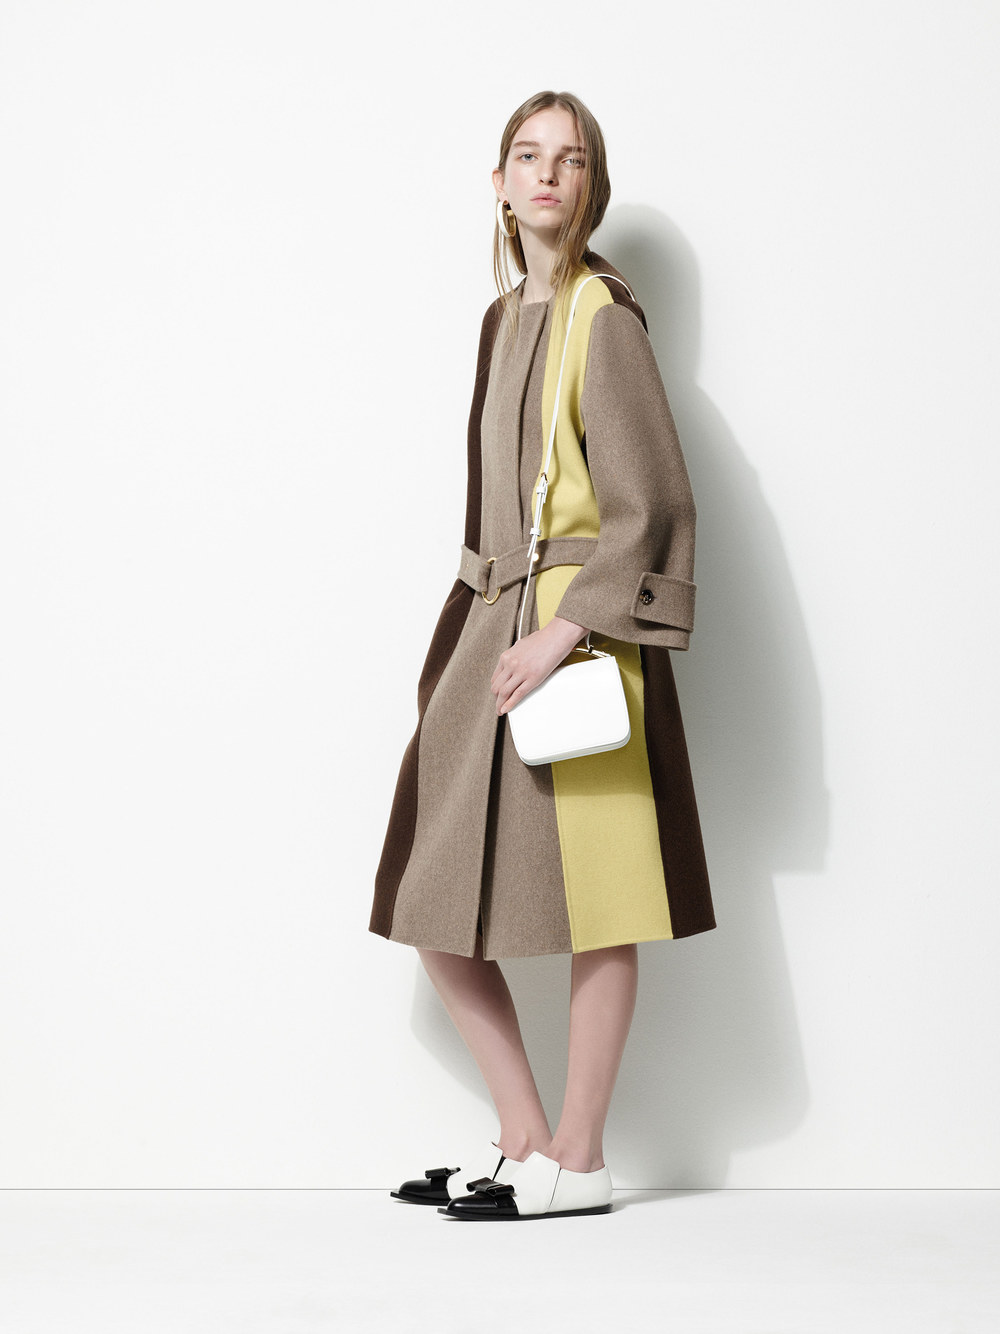 marni-pre-fall-2016-lookbook-18.jpg